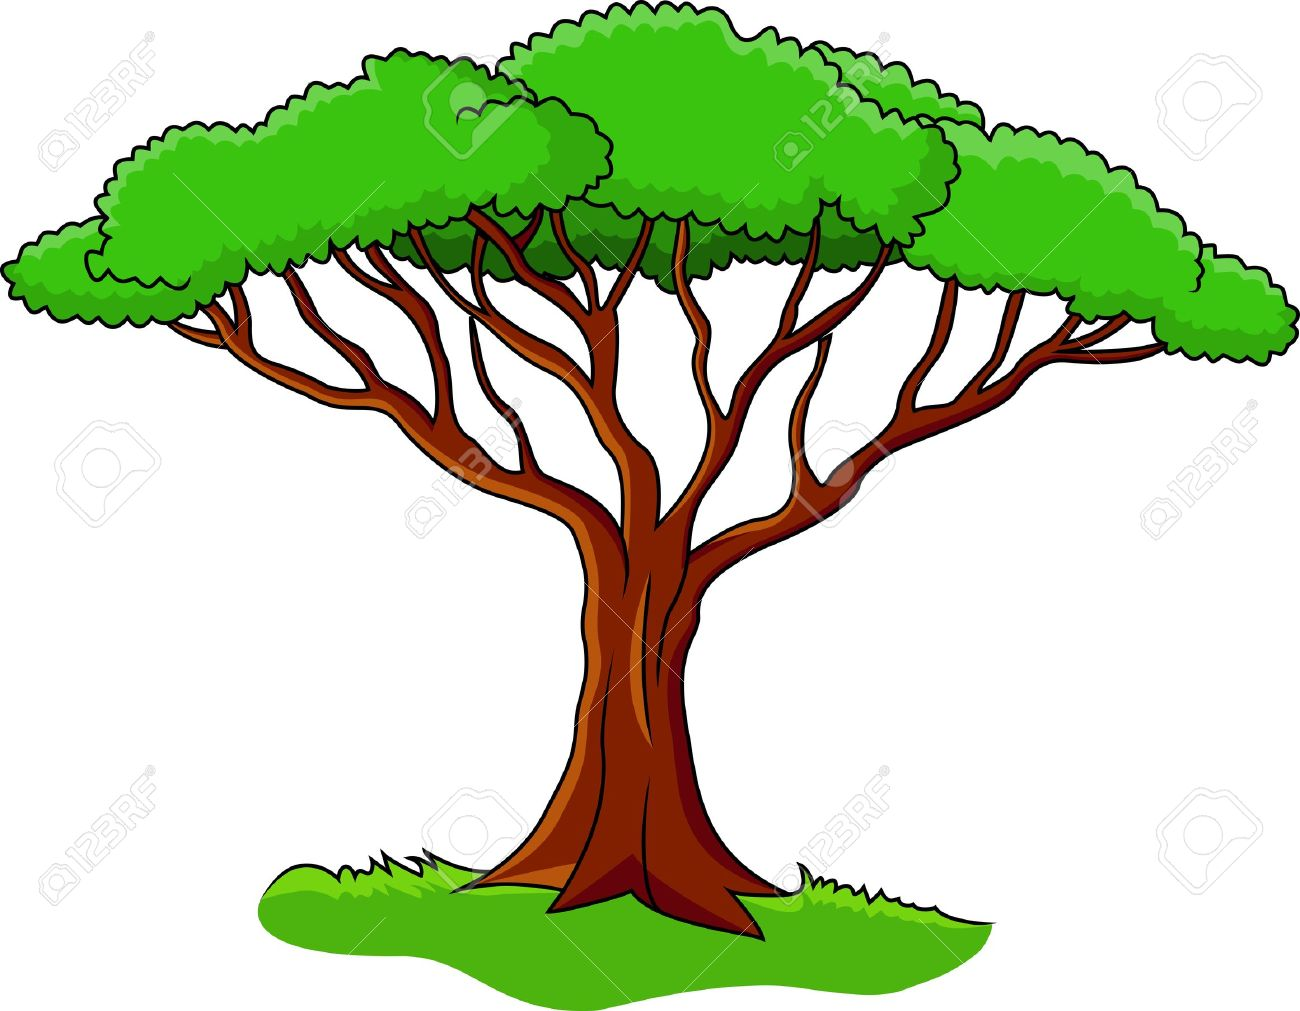 tree picture free download best tree picture on clipart palm tree lizard clip art palm trees free